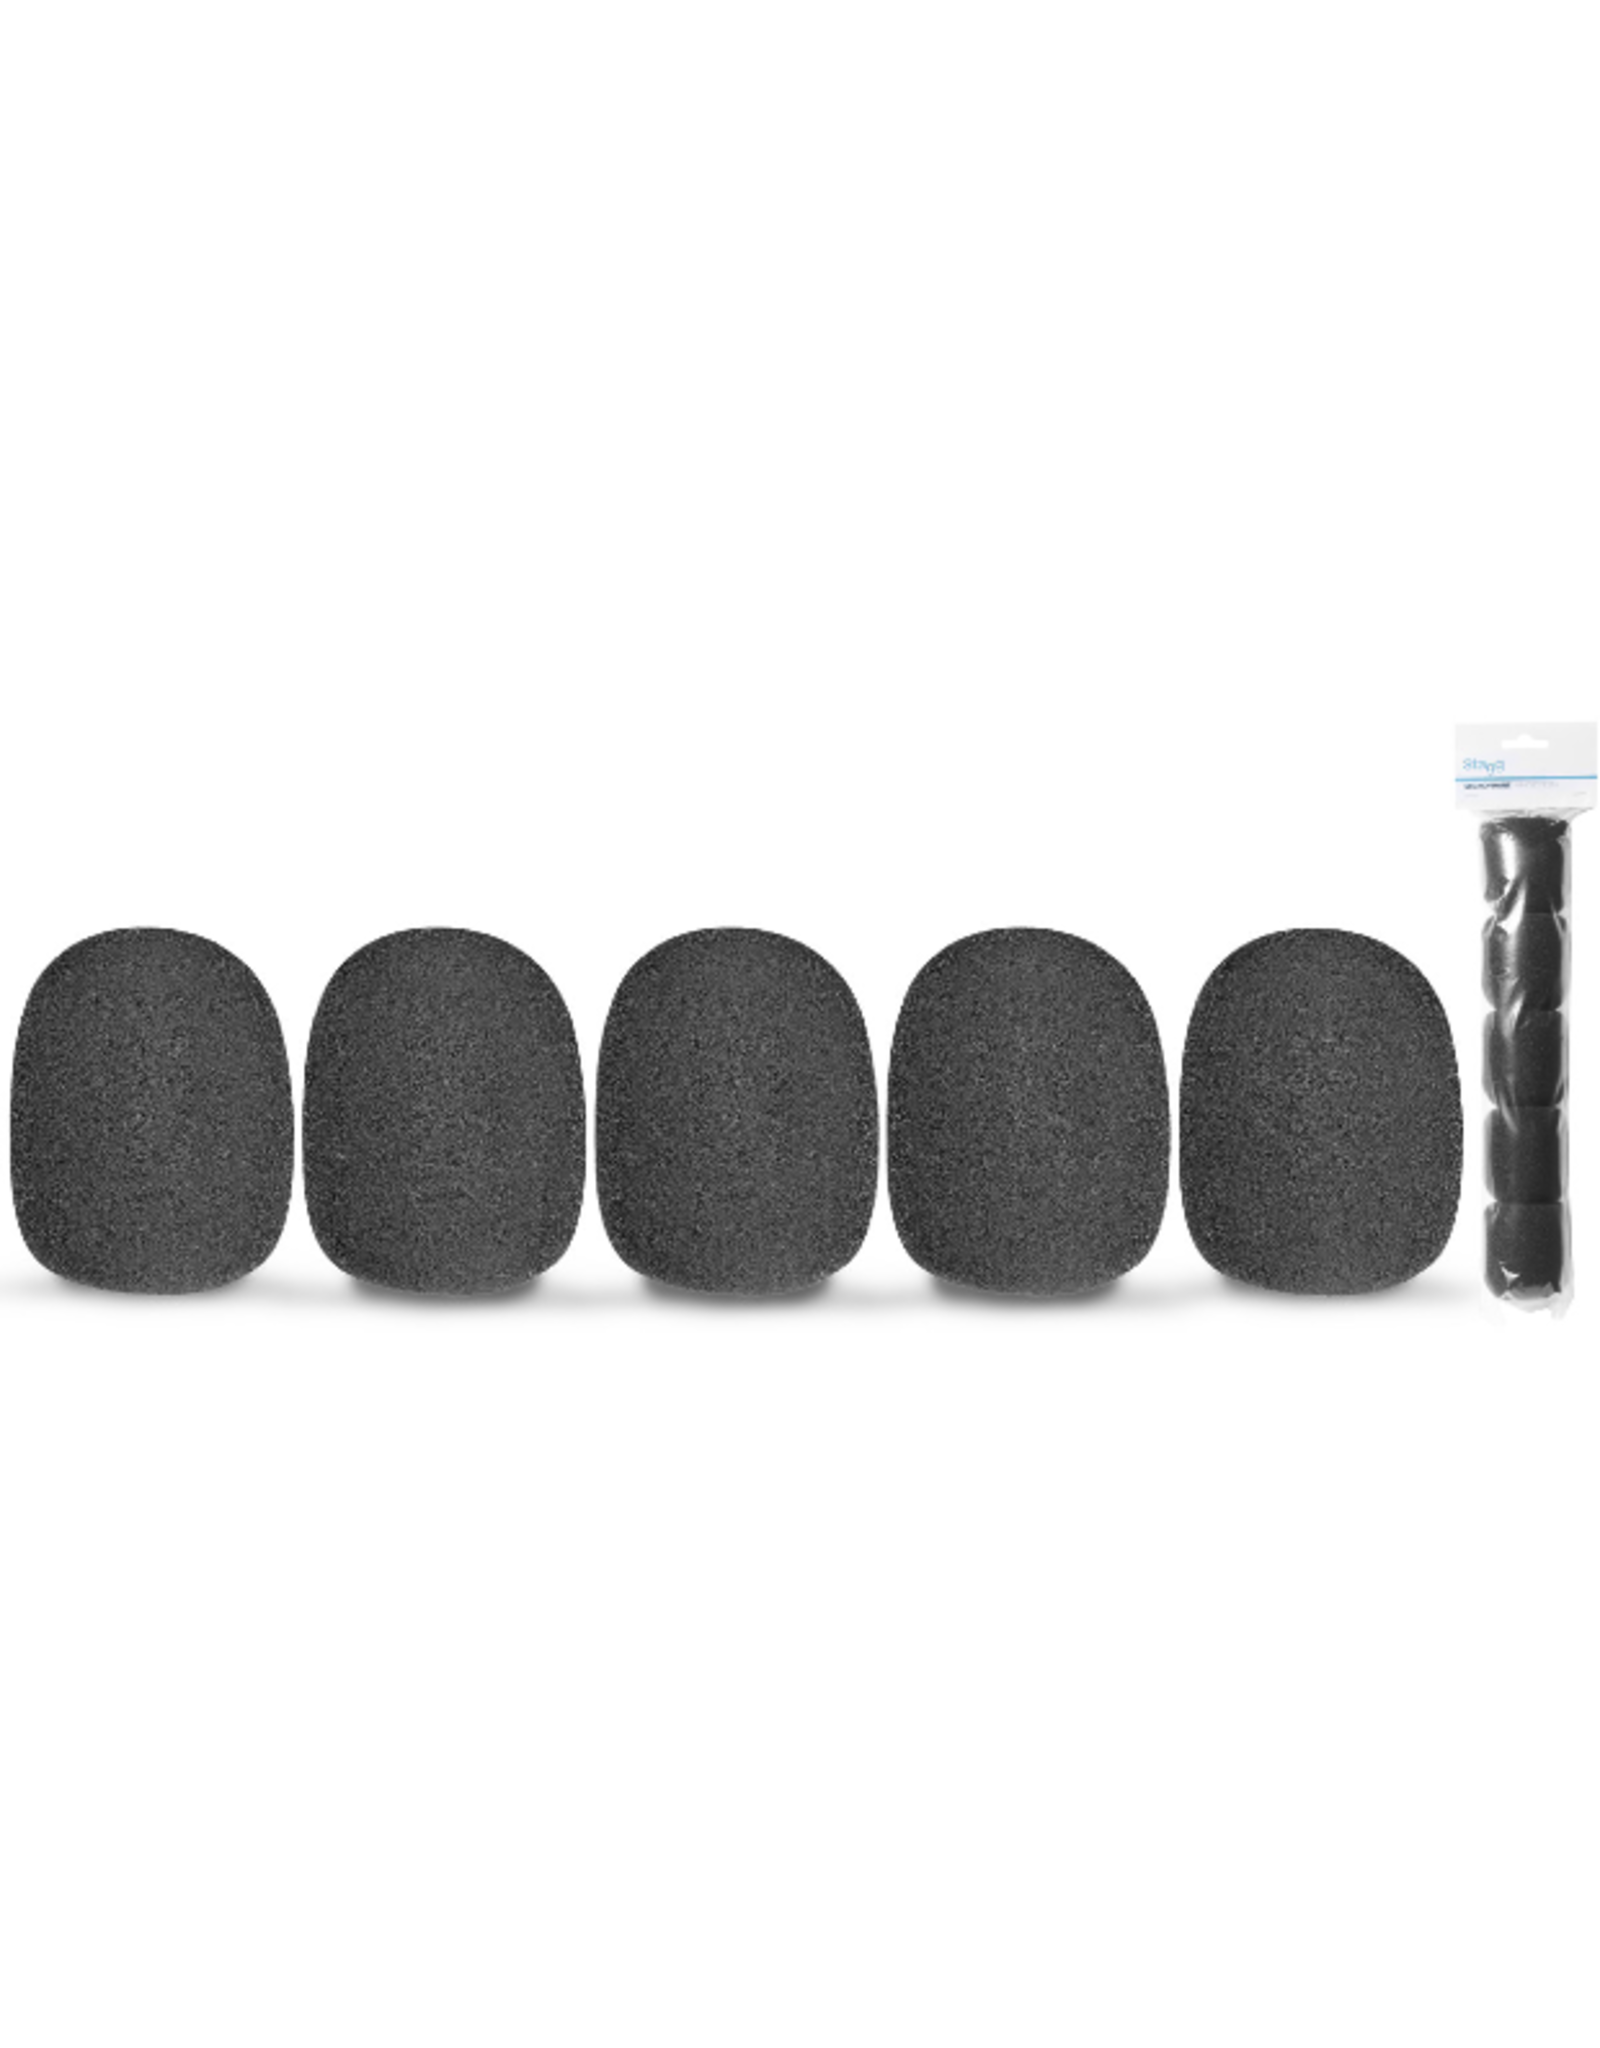 Stagg Stagg Microphone Windscreen (SM58 Type) 5 Pack Black